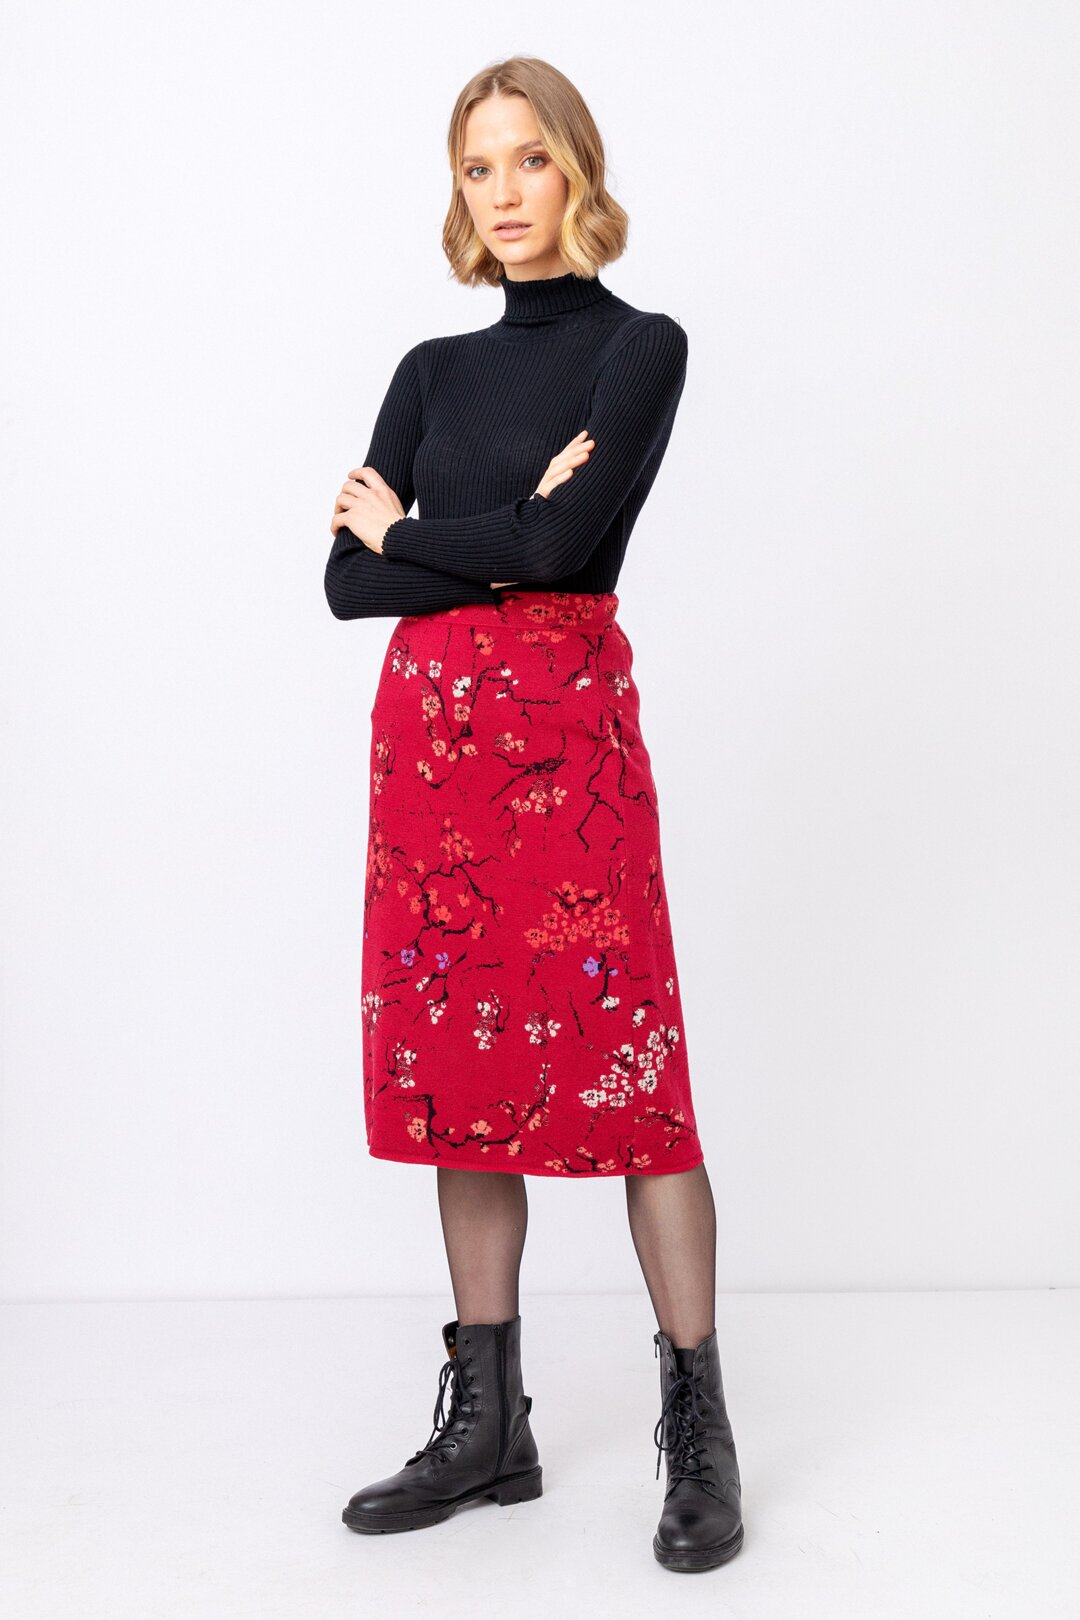 outfit-7c8a1826